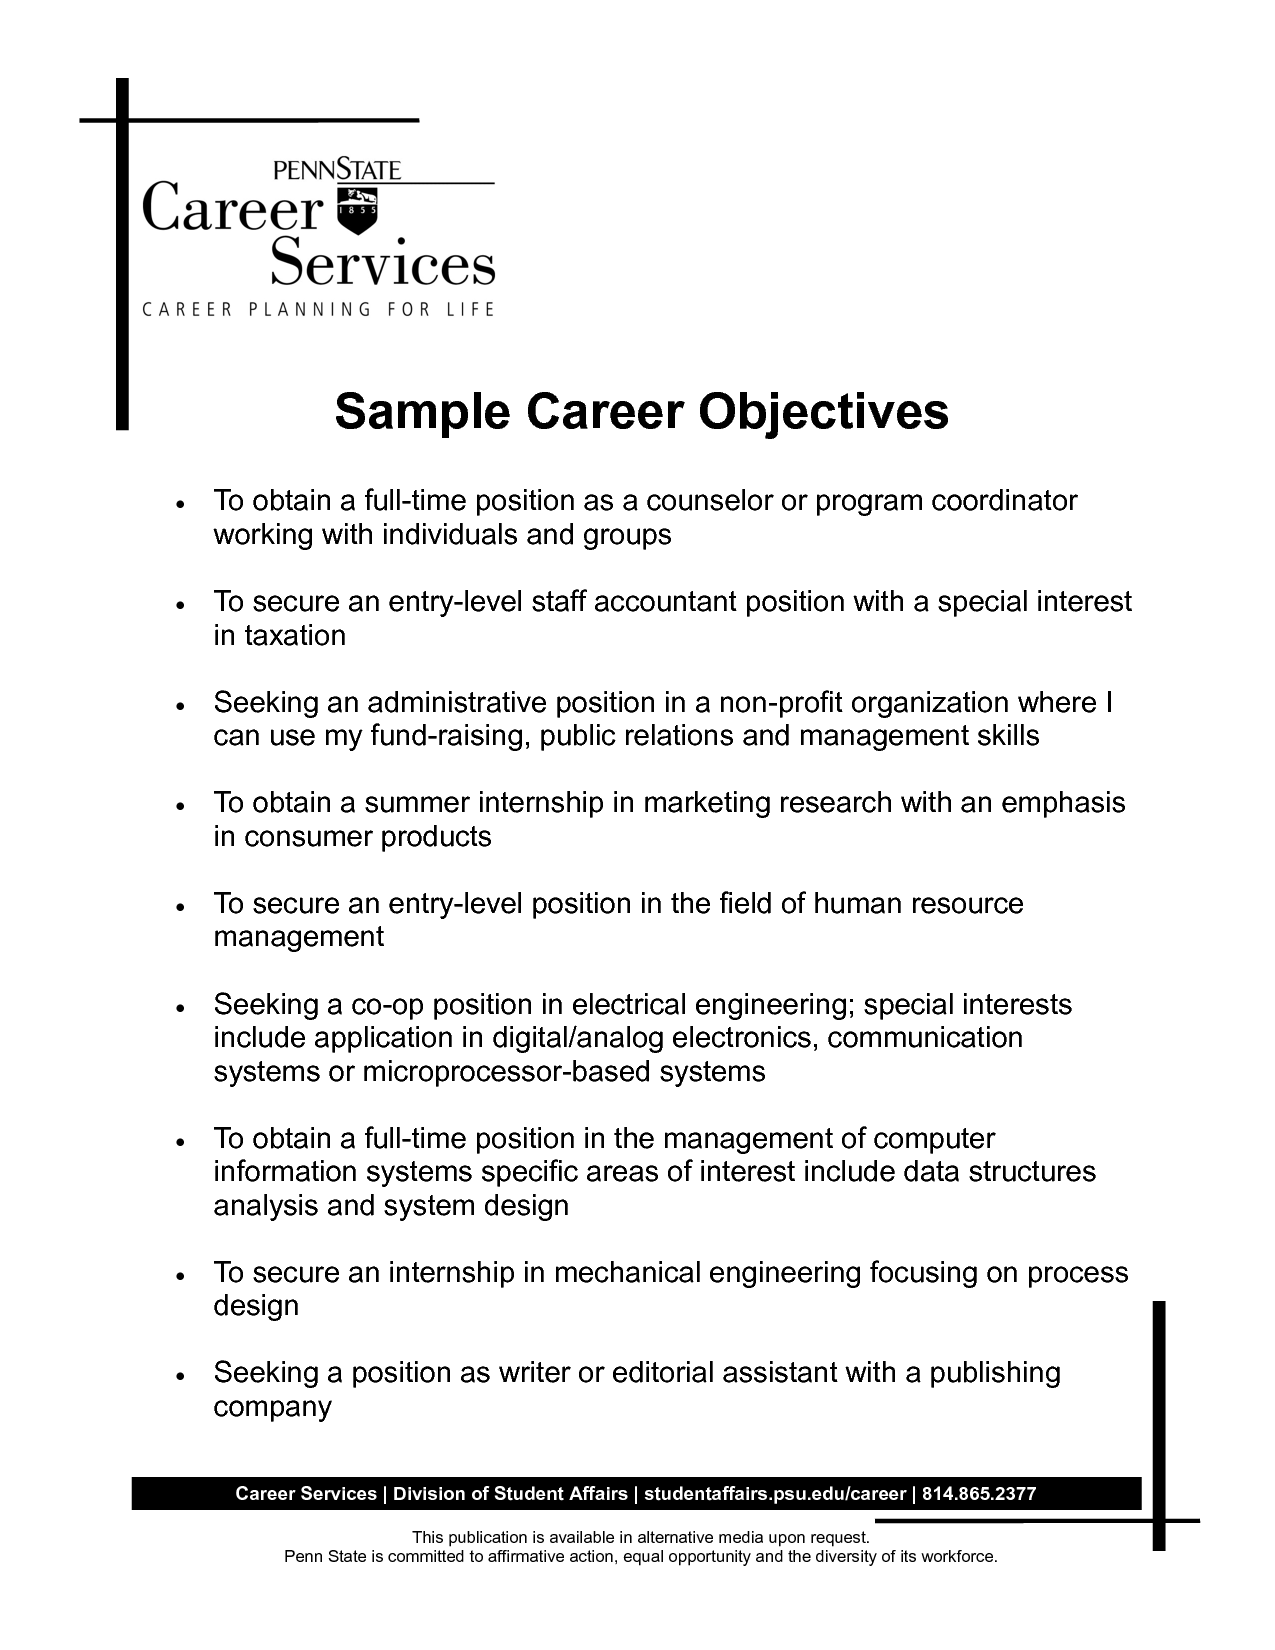 Career objective resume accountant httpresumecareerfo career objective resume accountant httpresumecareerfocareer objective resume accountant 17 altavistaventures Gallery